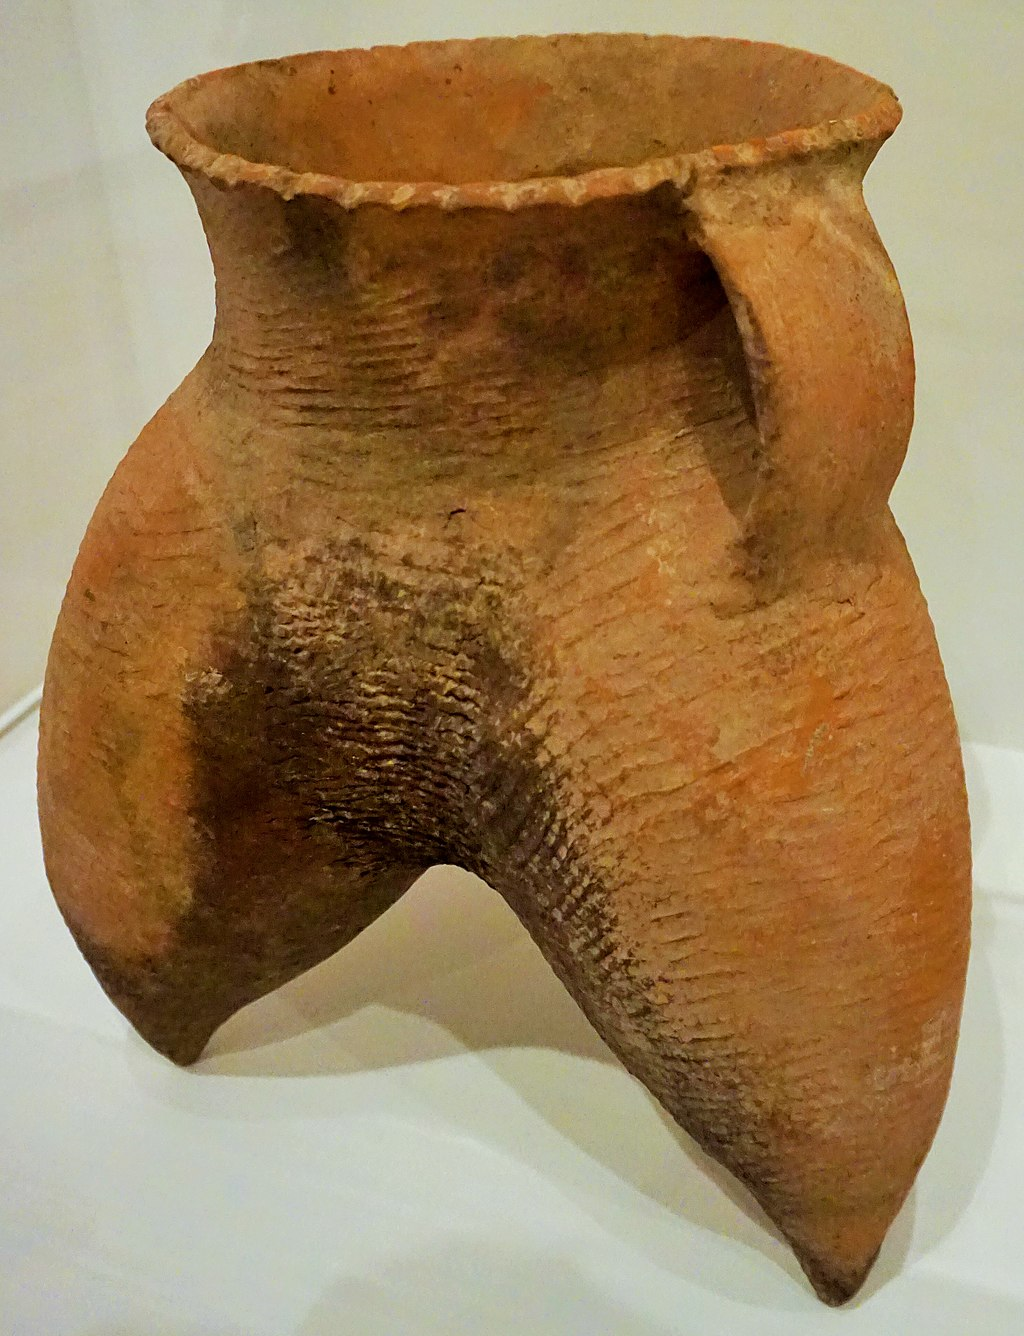 Queensland Art Gallery - Chinese Tripod Jar